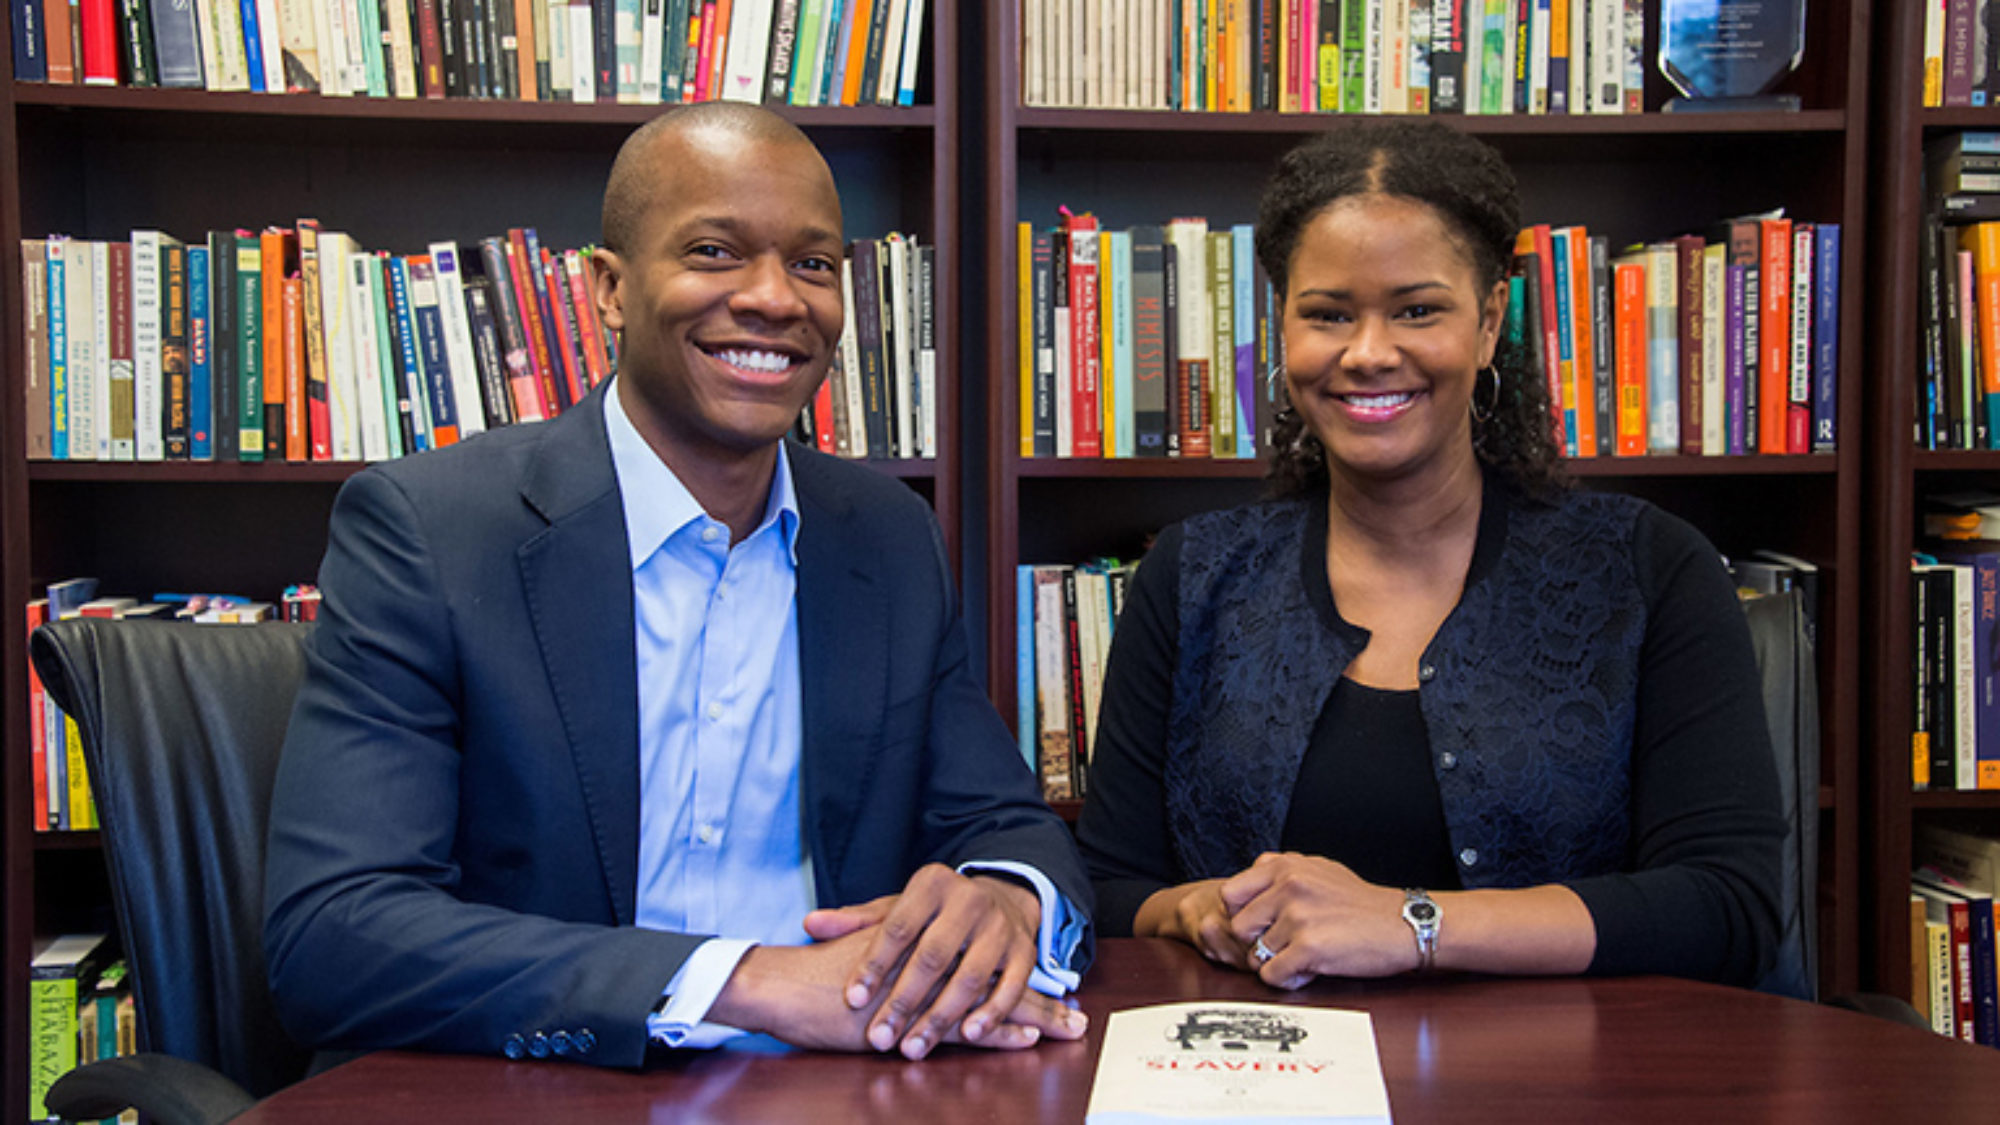 Robert Patterson and Soyica Colbert sit at a table with their book and a bookcase behind them.